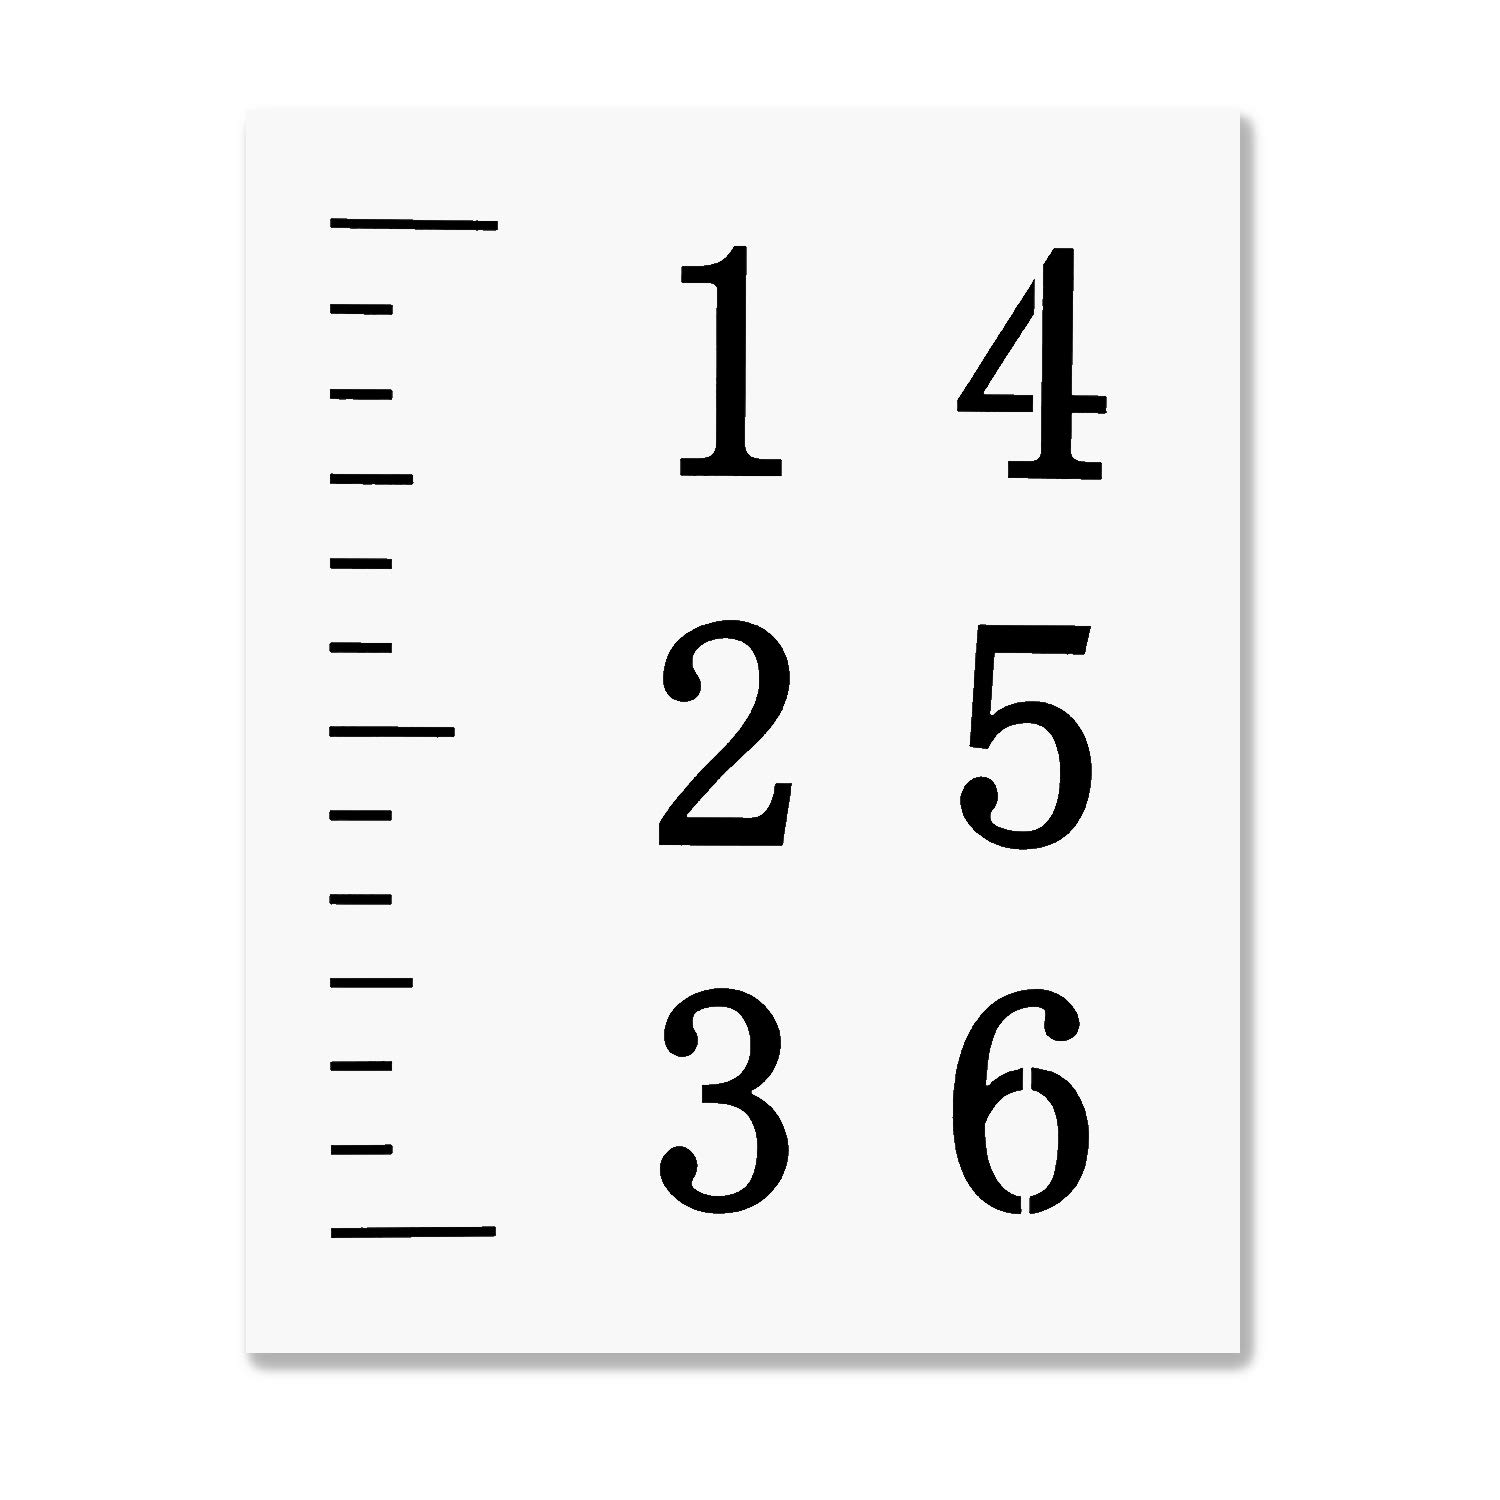 LEKUSHA Create Your Own 6 Feet Growth Chart Ruler Stencil, 12 Mil Durable Reusable Height Chart Template, Great for Painting Kids Measuring Chart, Fit for 5 Inch Wide Wood Board(Mylar Material)